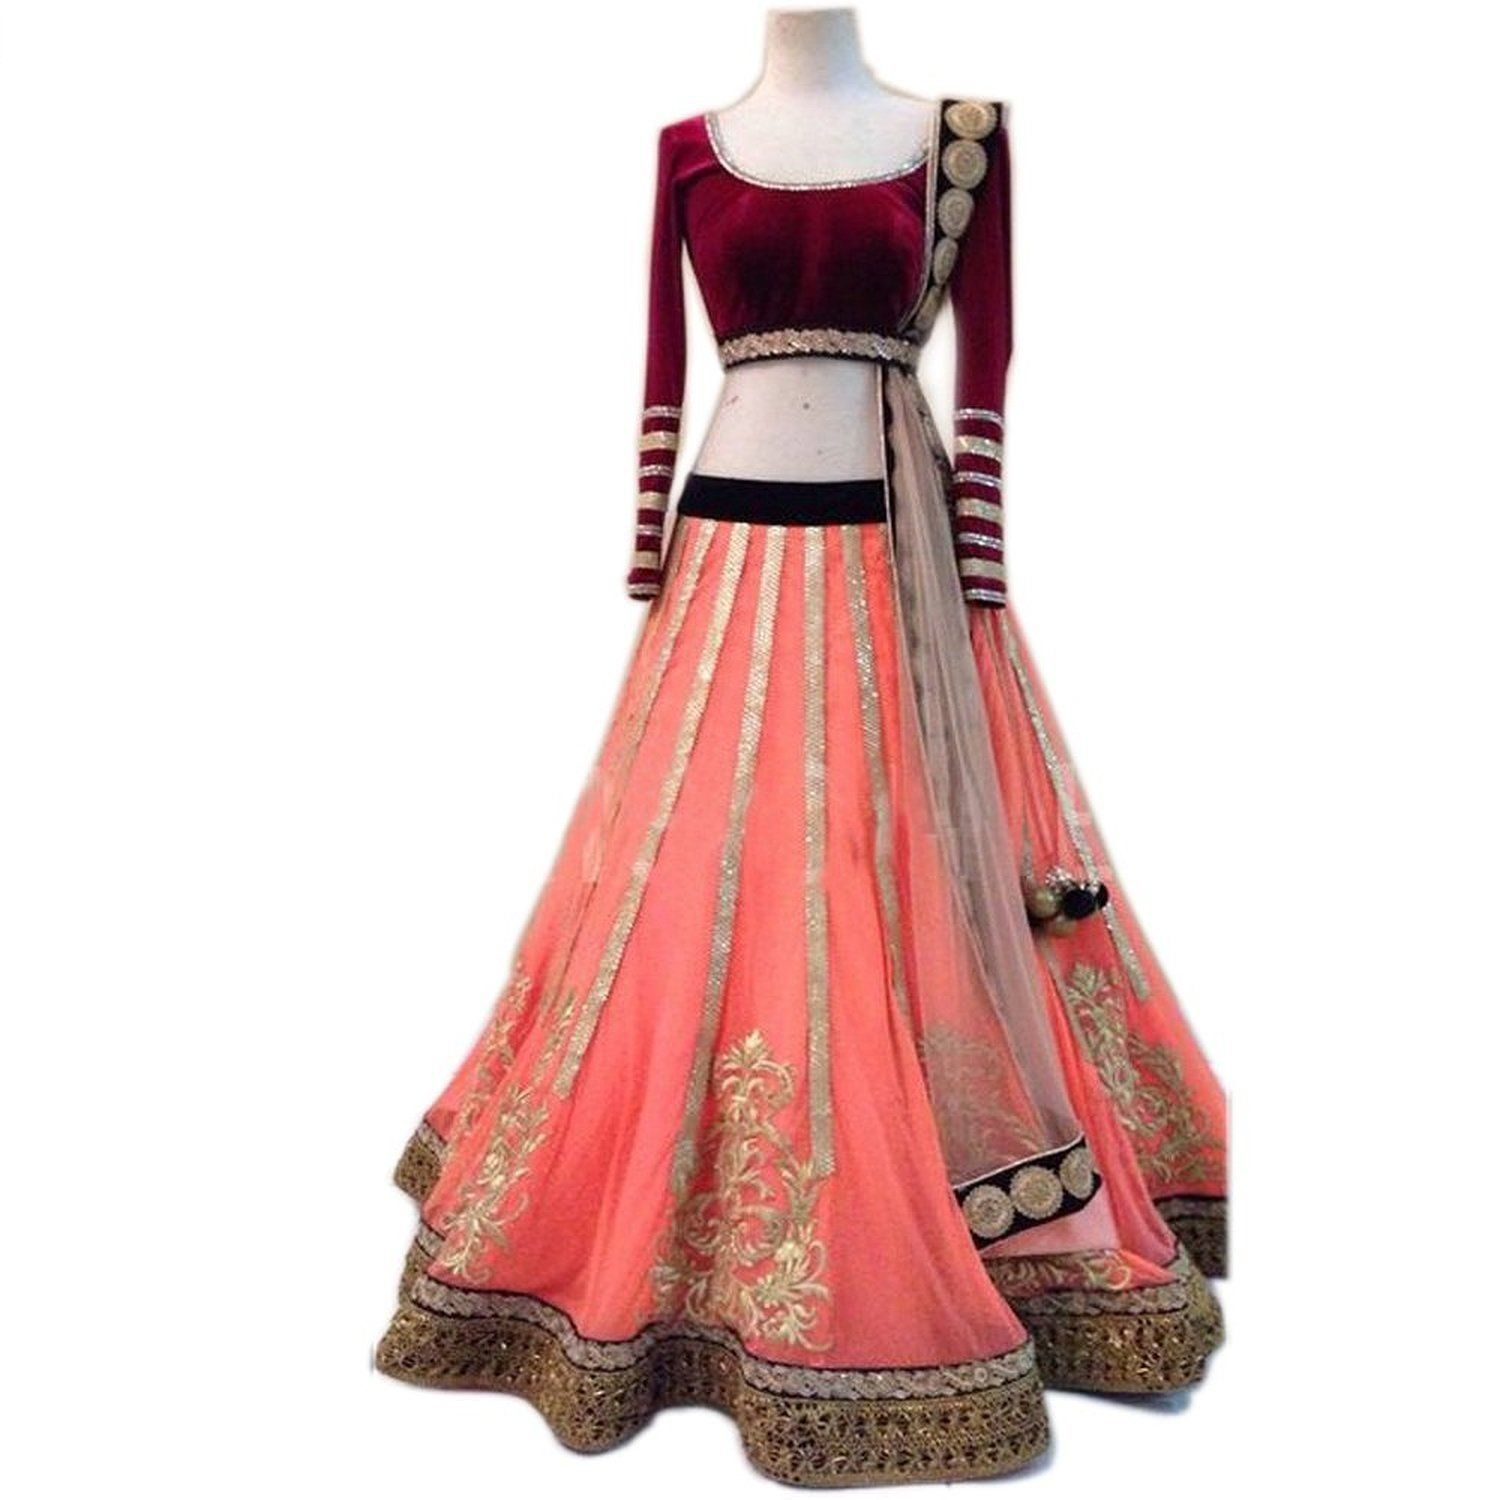 45ef5390e34 Havy Quality gowns for women party wear (lehenga choli for wedding function  salwar suits for women gowns for girls party wear 18 years latest sarees ...